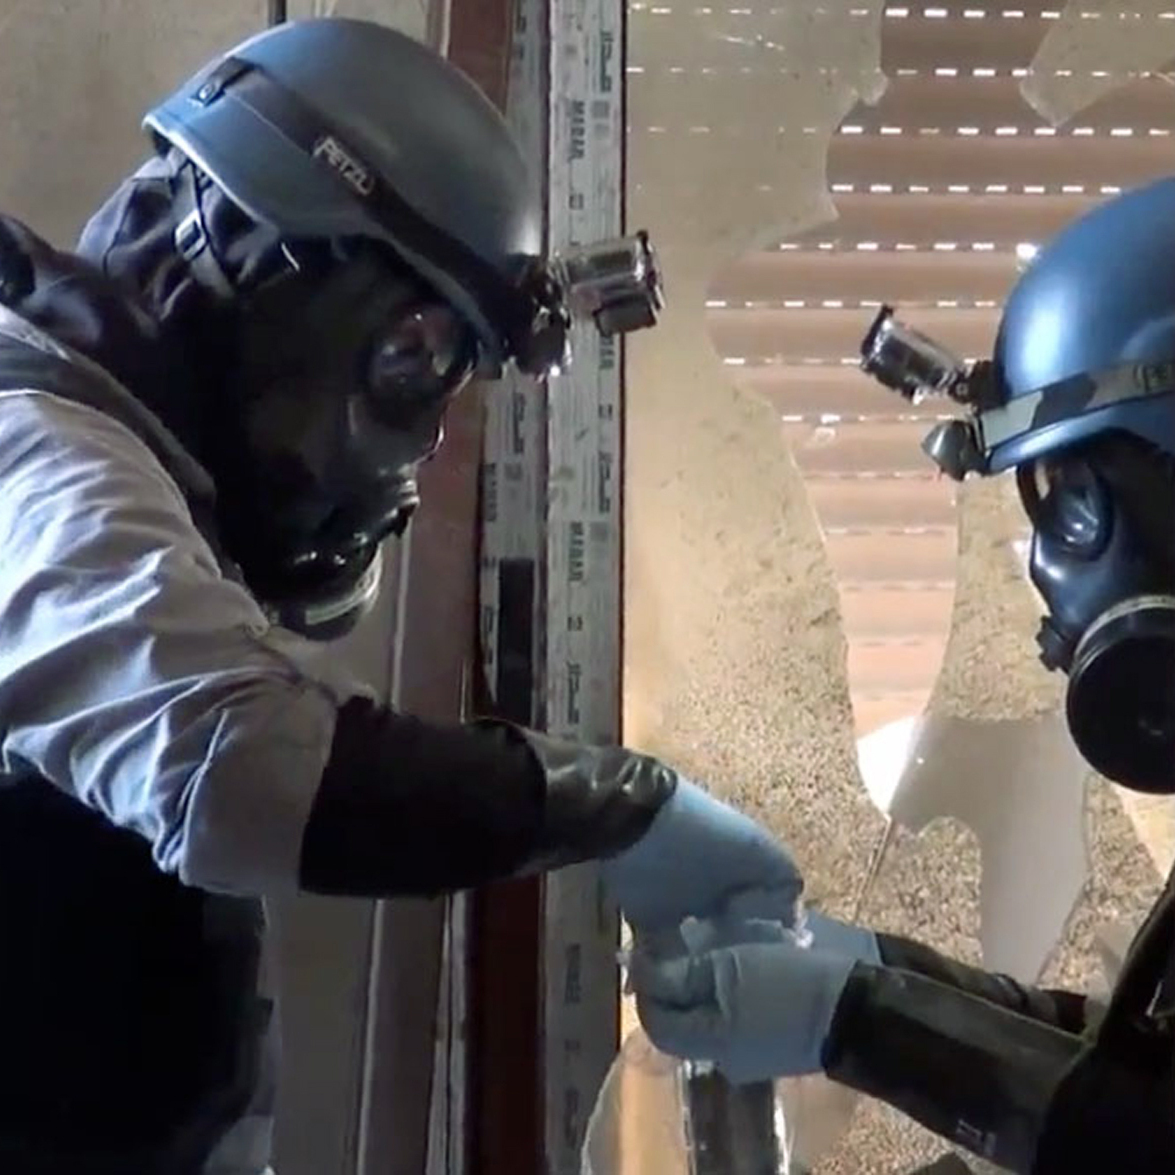 Members of a chemical weapons investigation team take samples outside Damascus on Aug. 29.